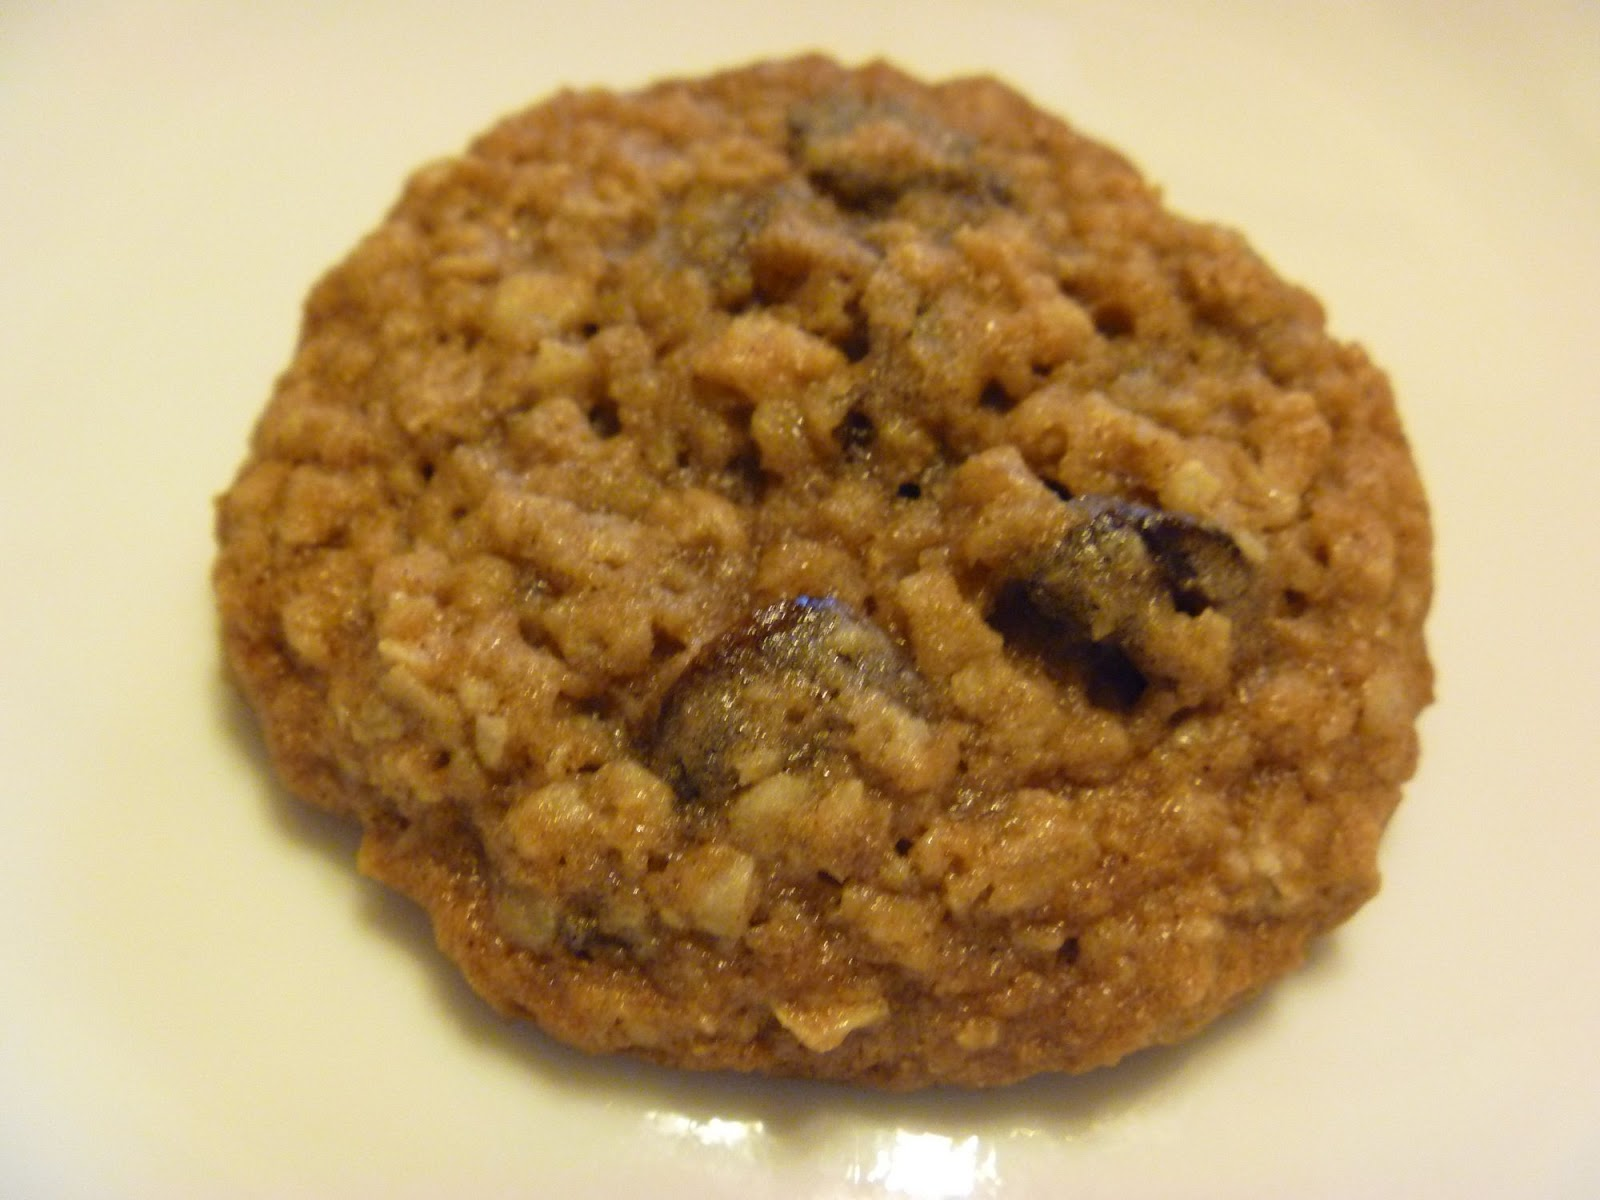 My Homemade Iowa Life: Oatmeal raisin cookies